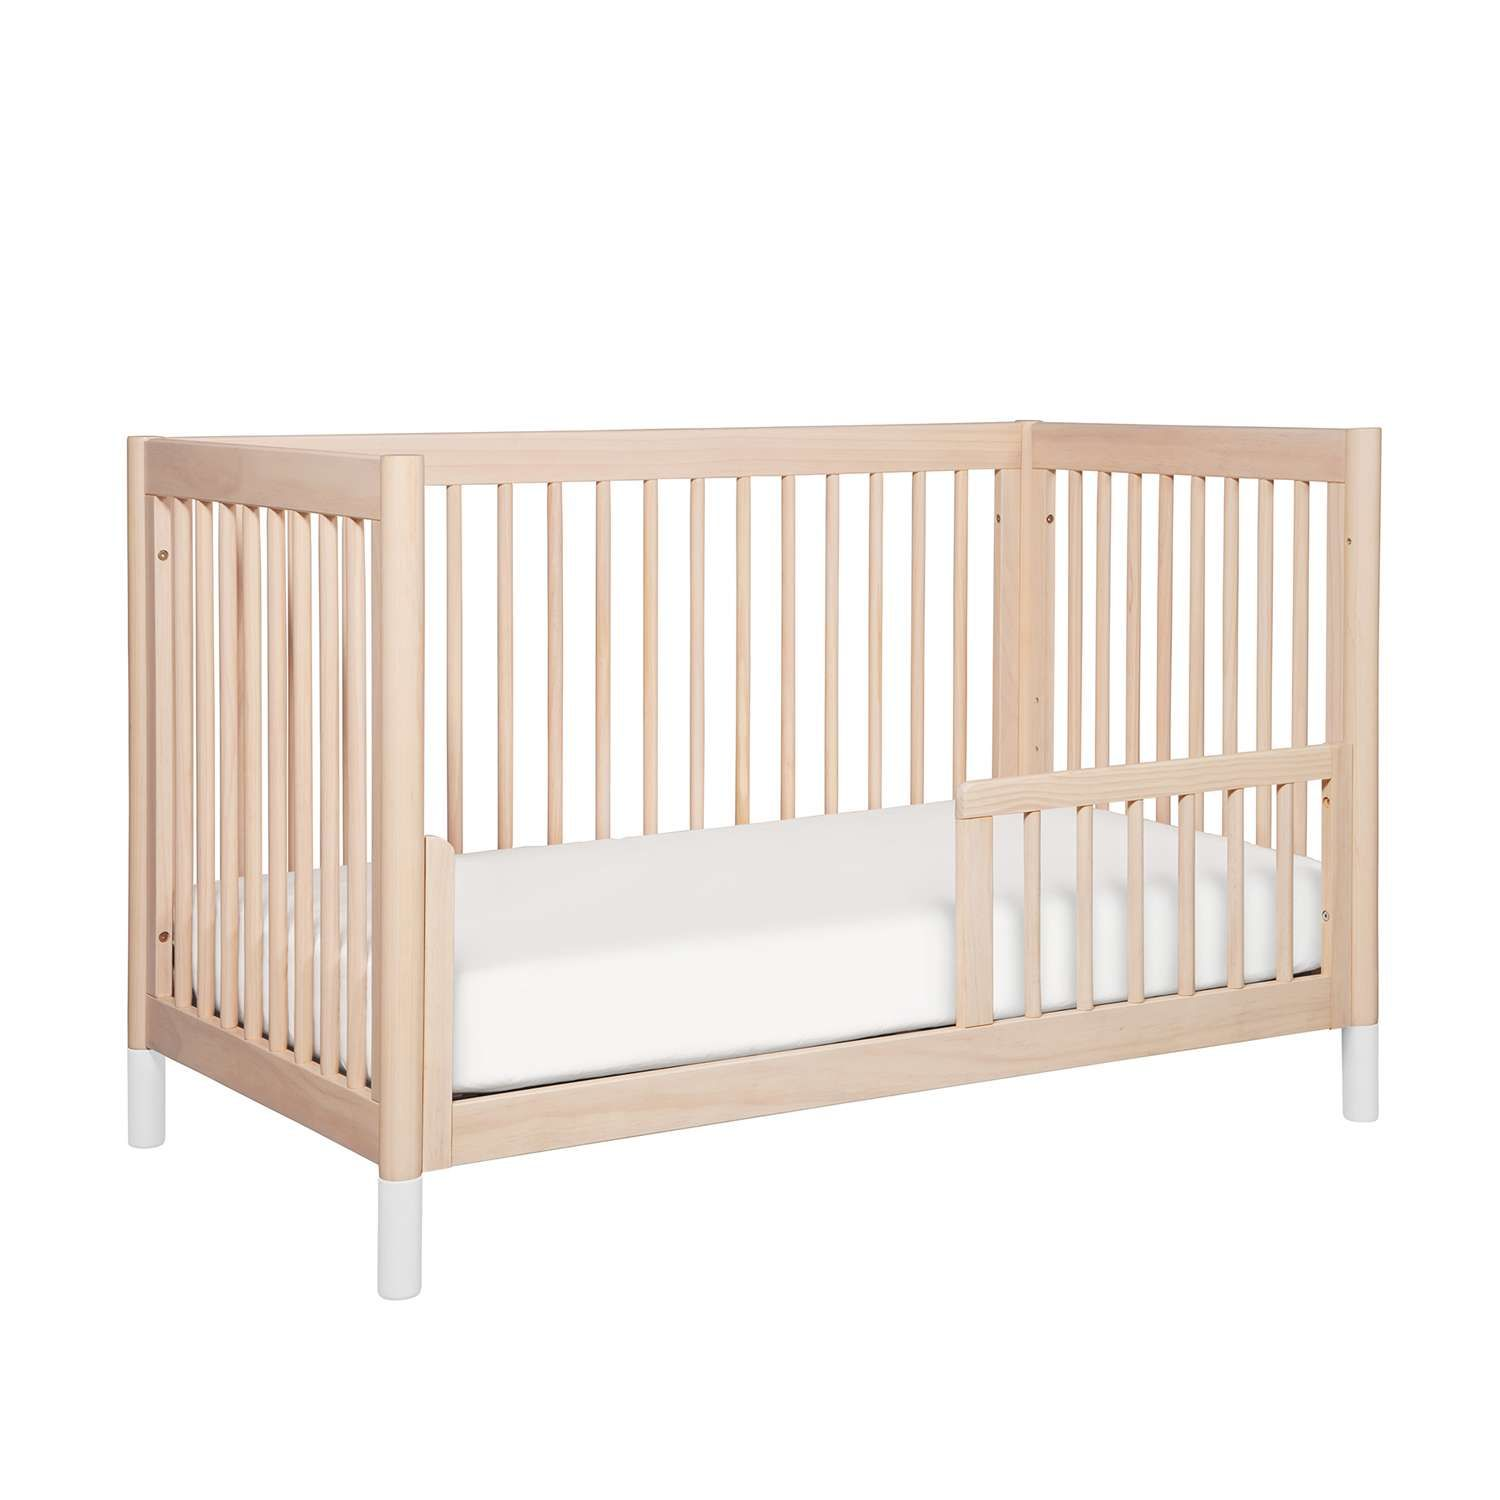 gelato 4 in 1 convertible crib with toddler bed conversion kit